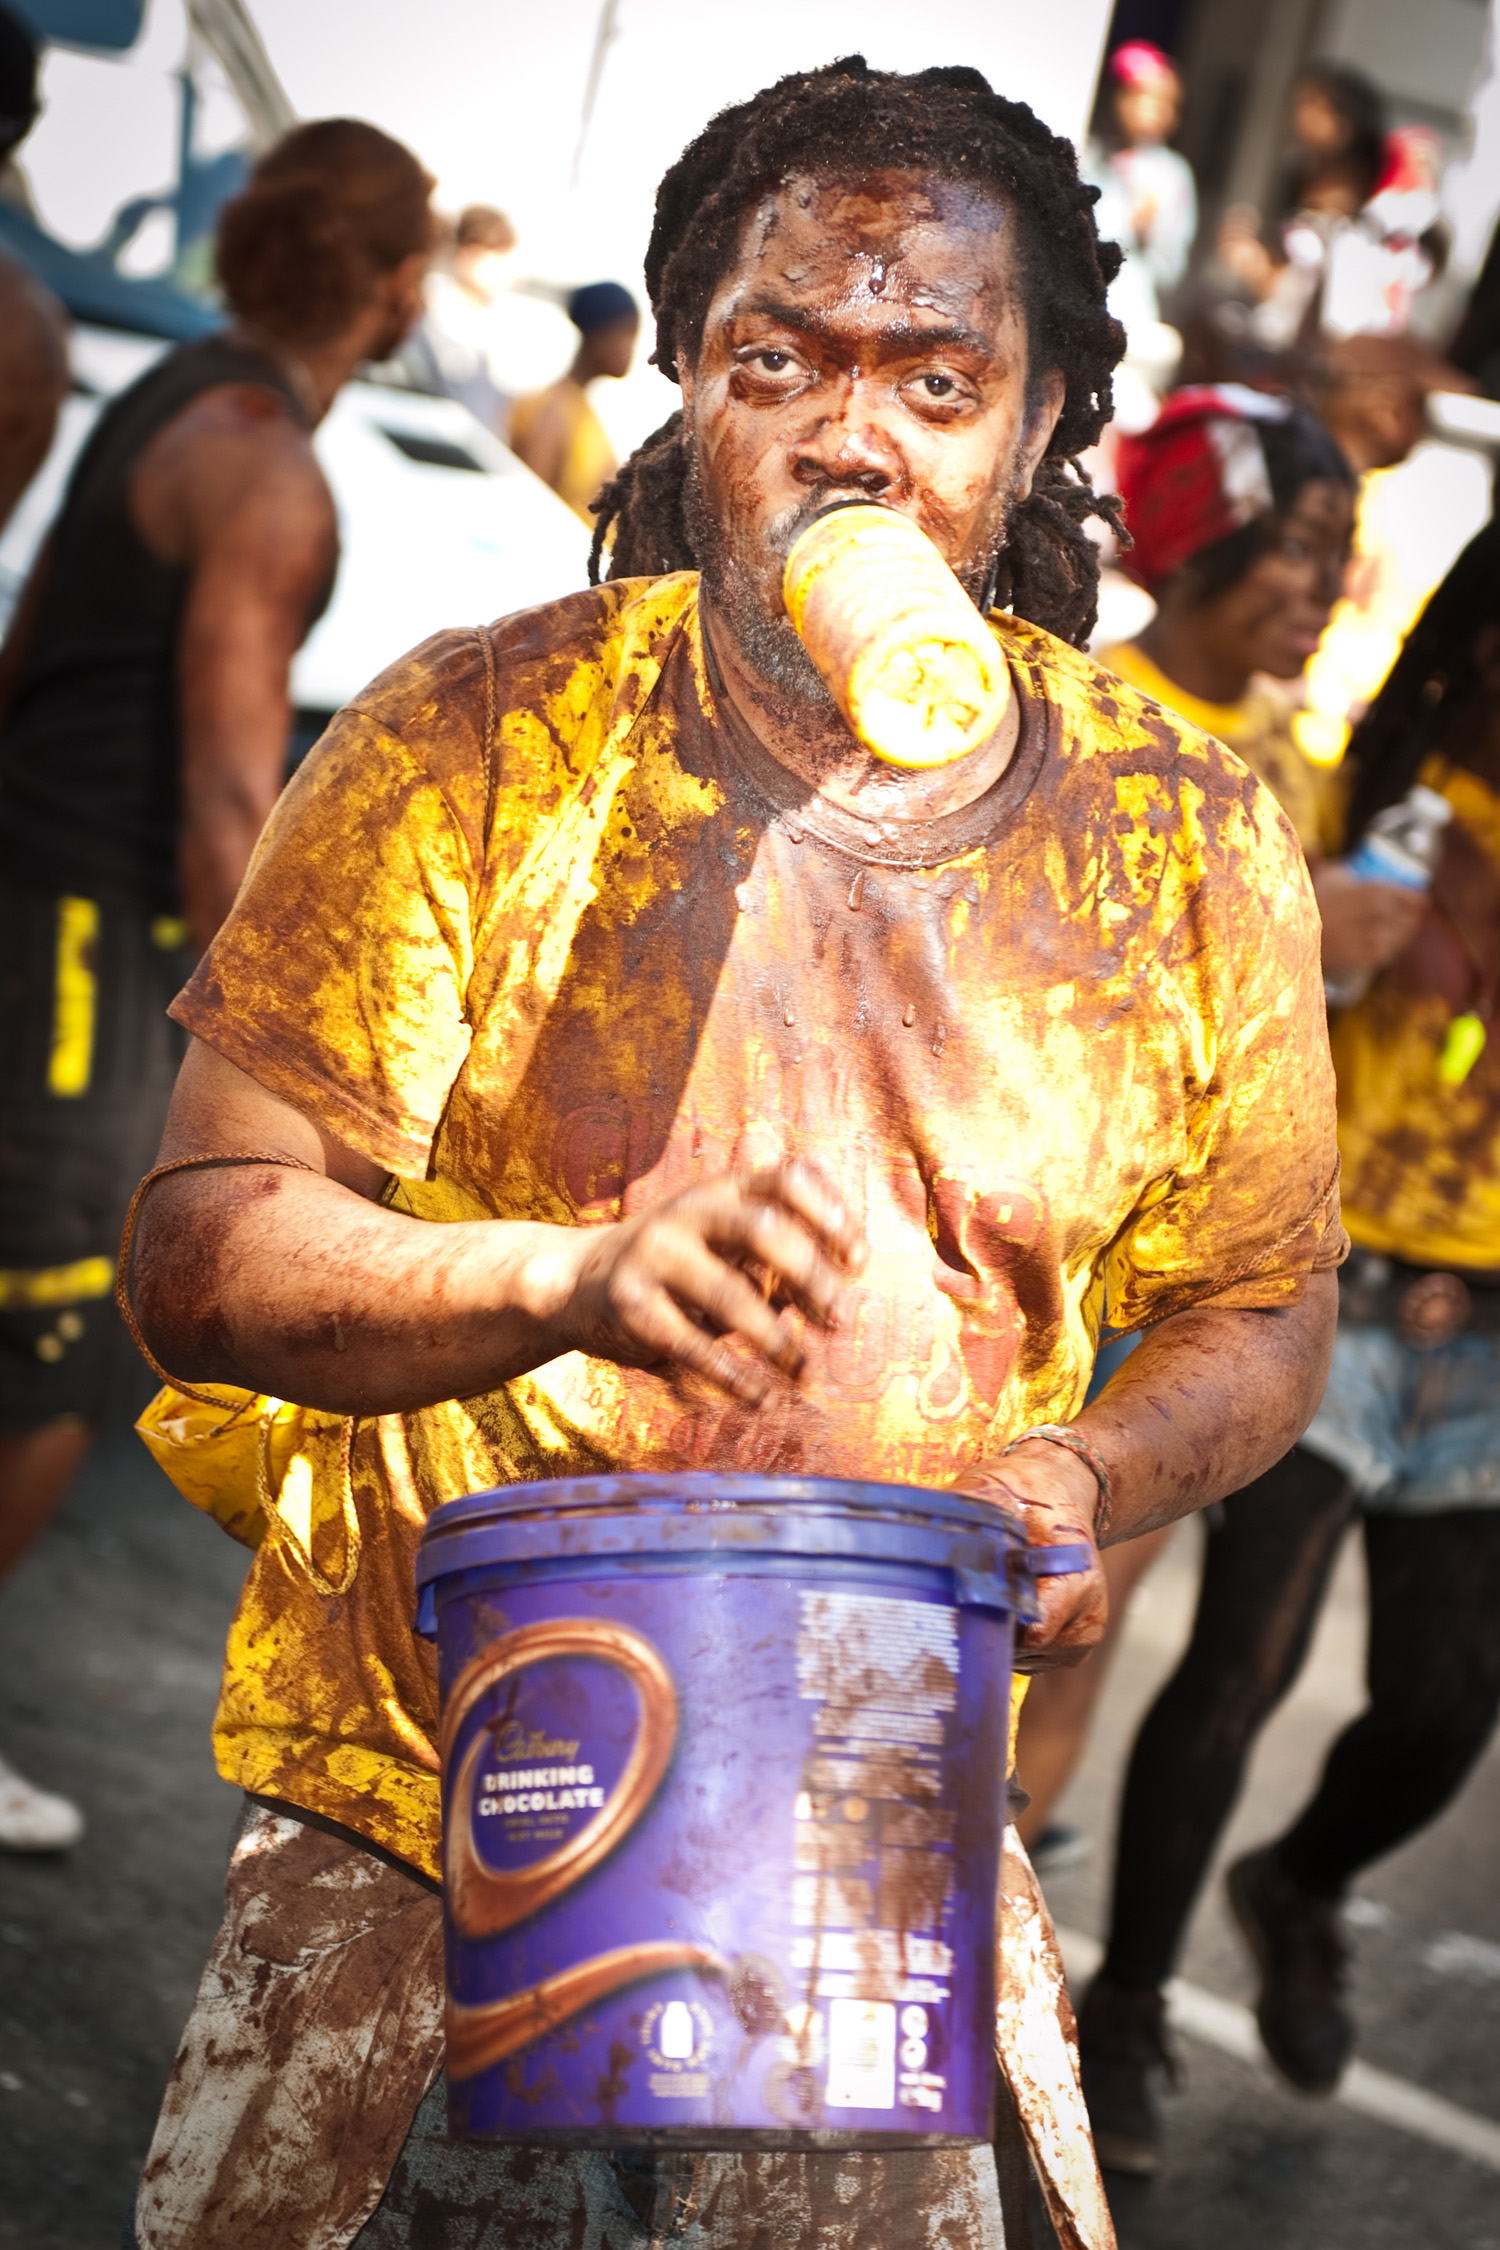 Carnival_the_chocolate_07